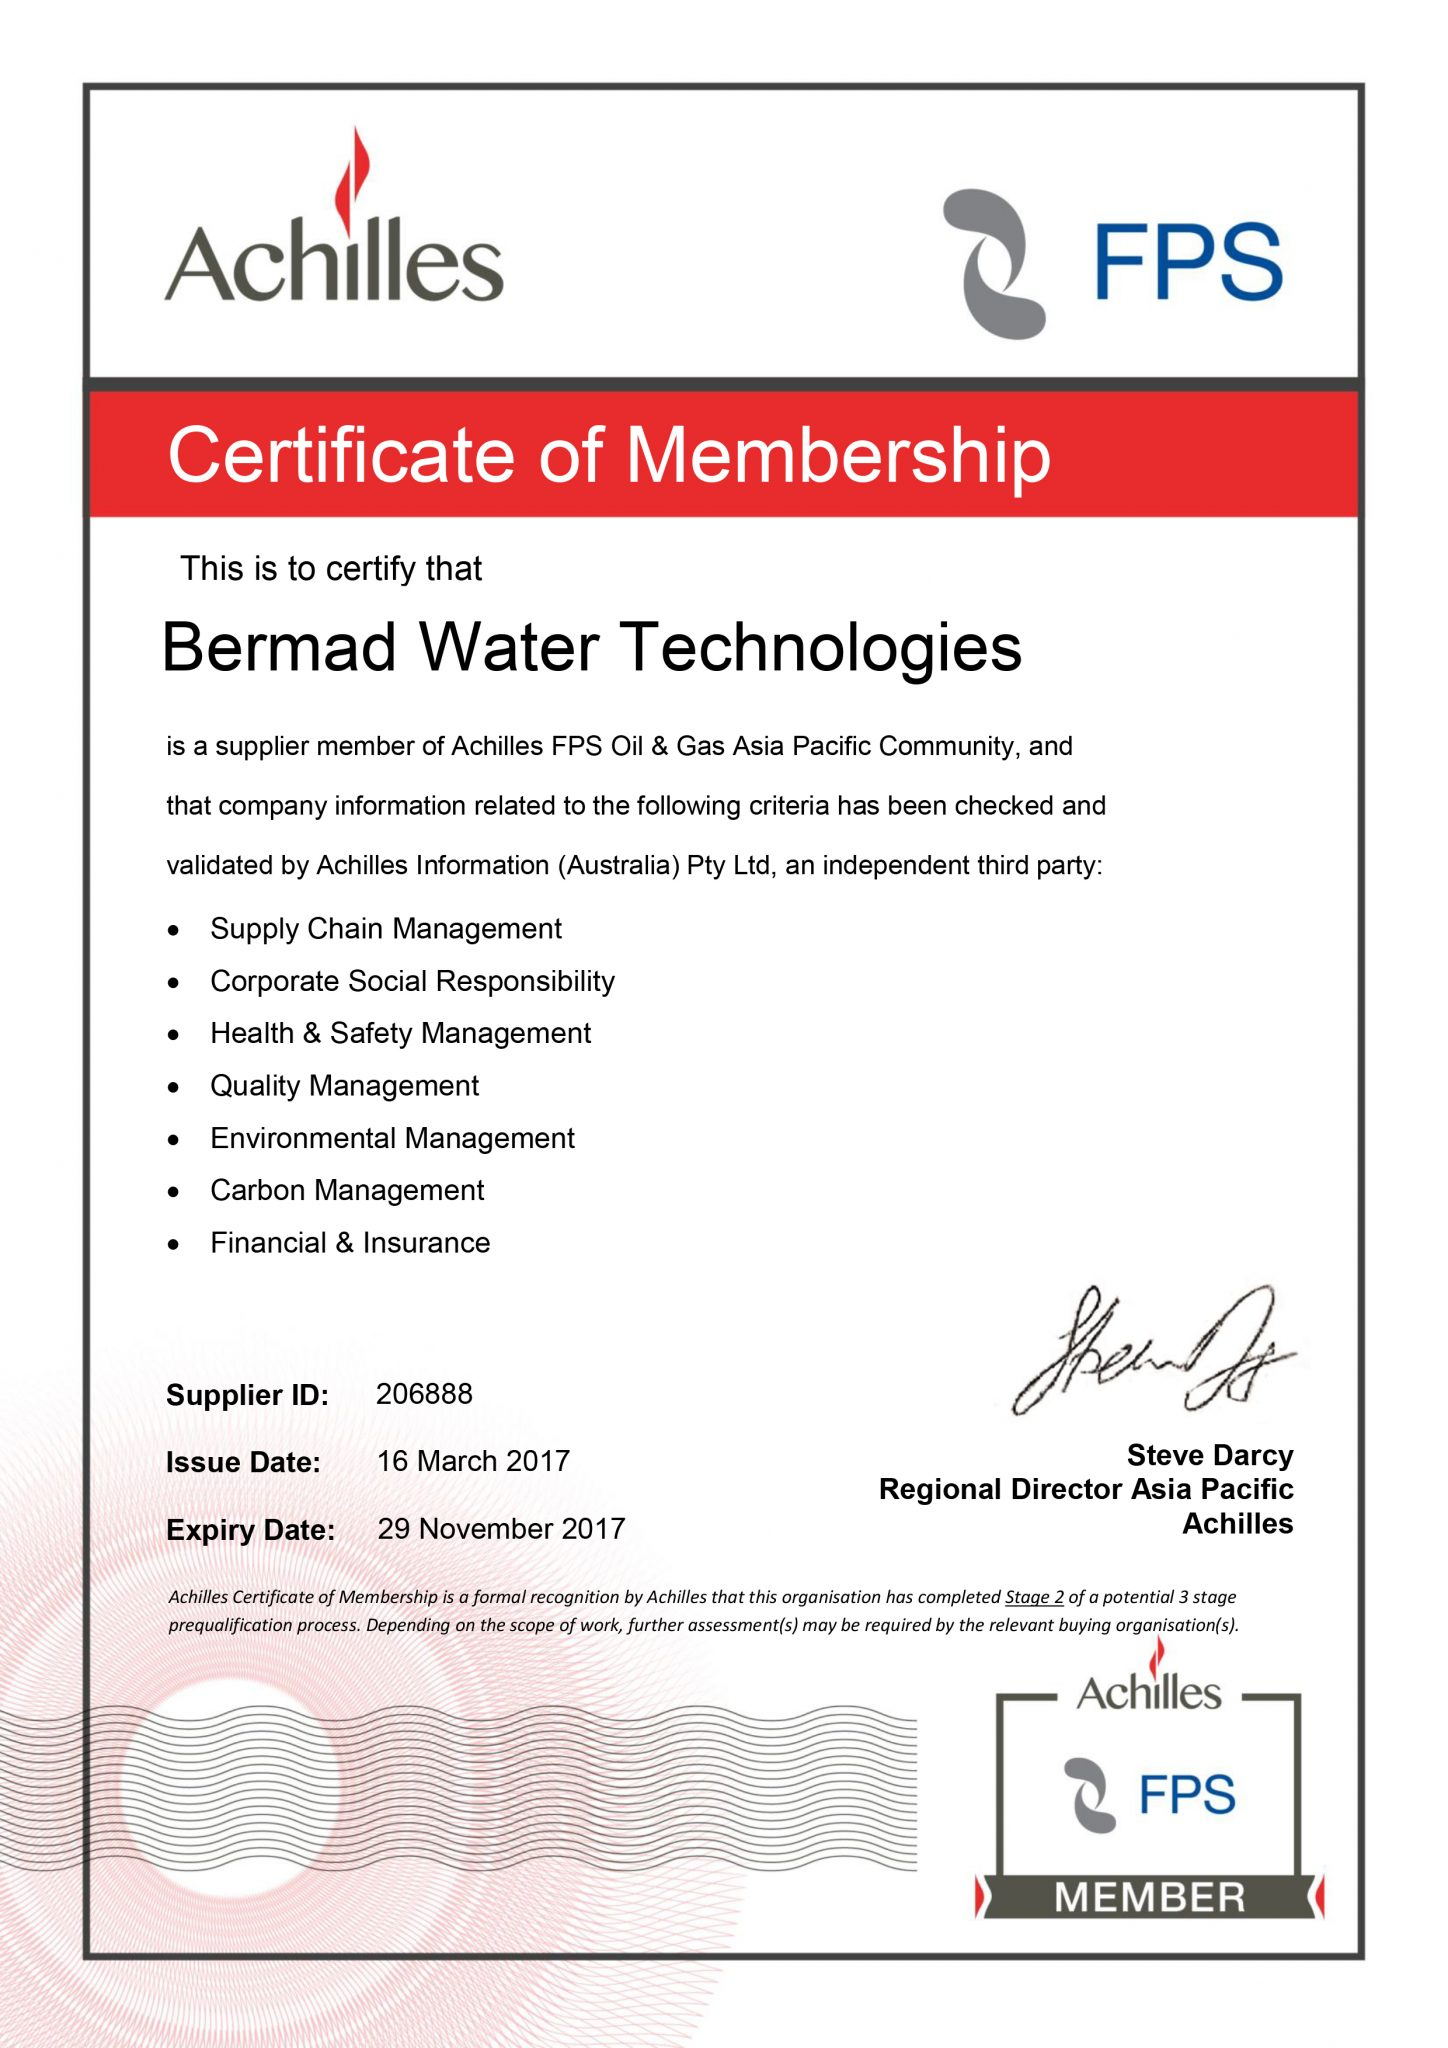 206888-Bermad-Water-Technologies-1